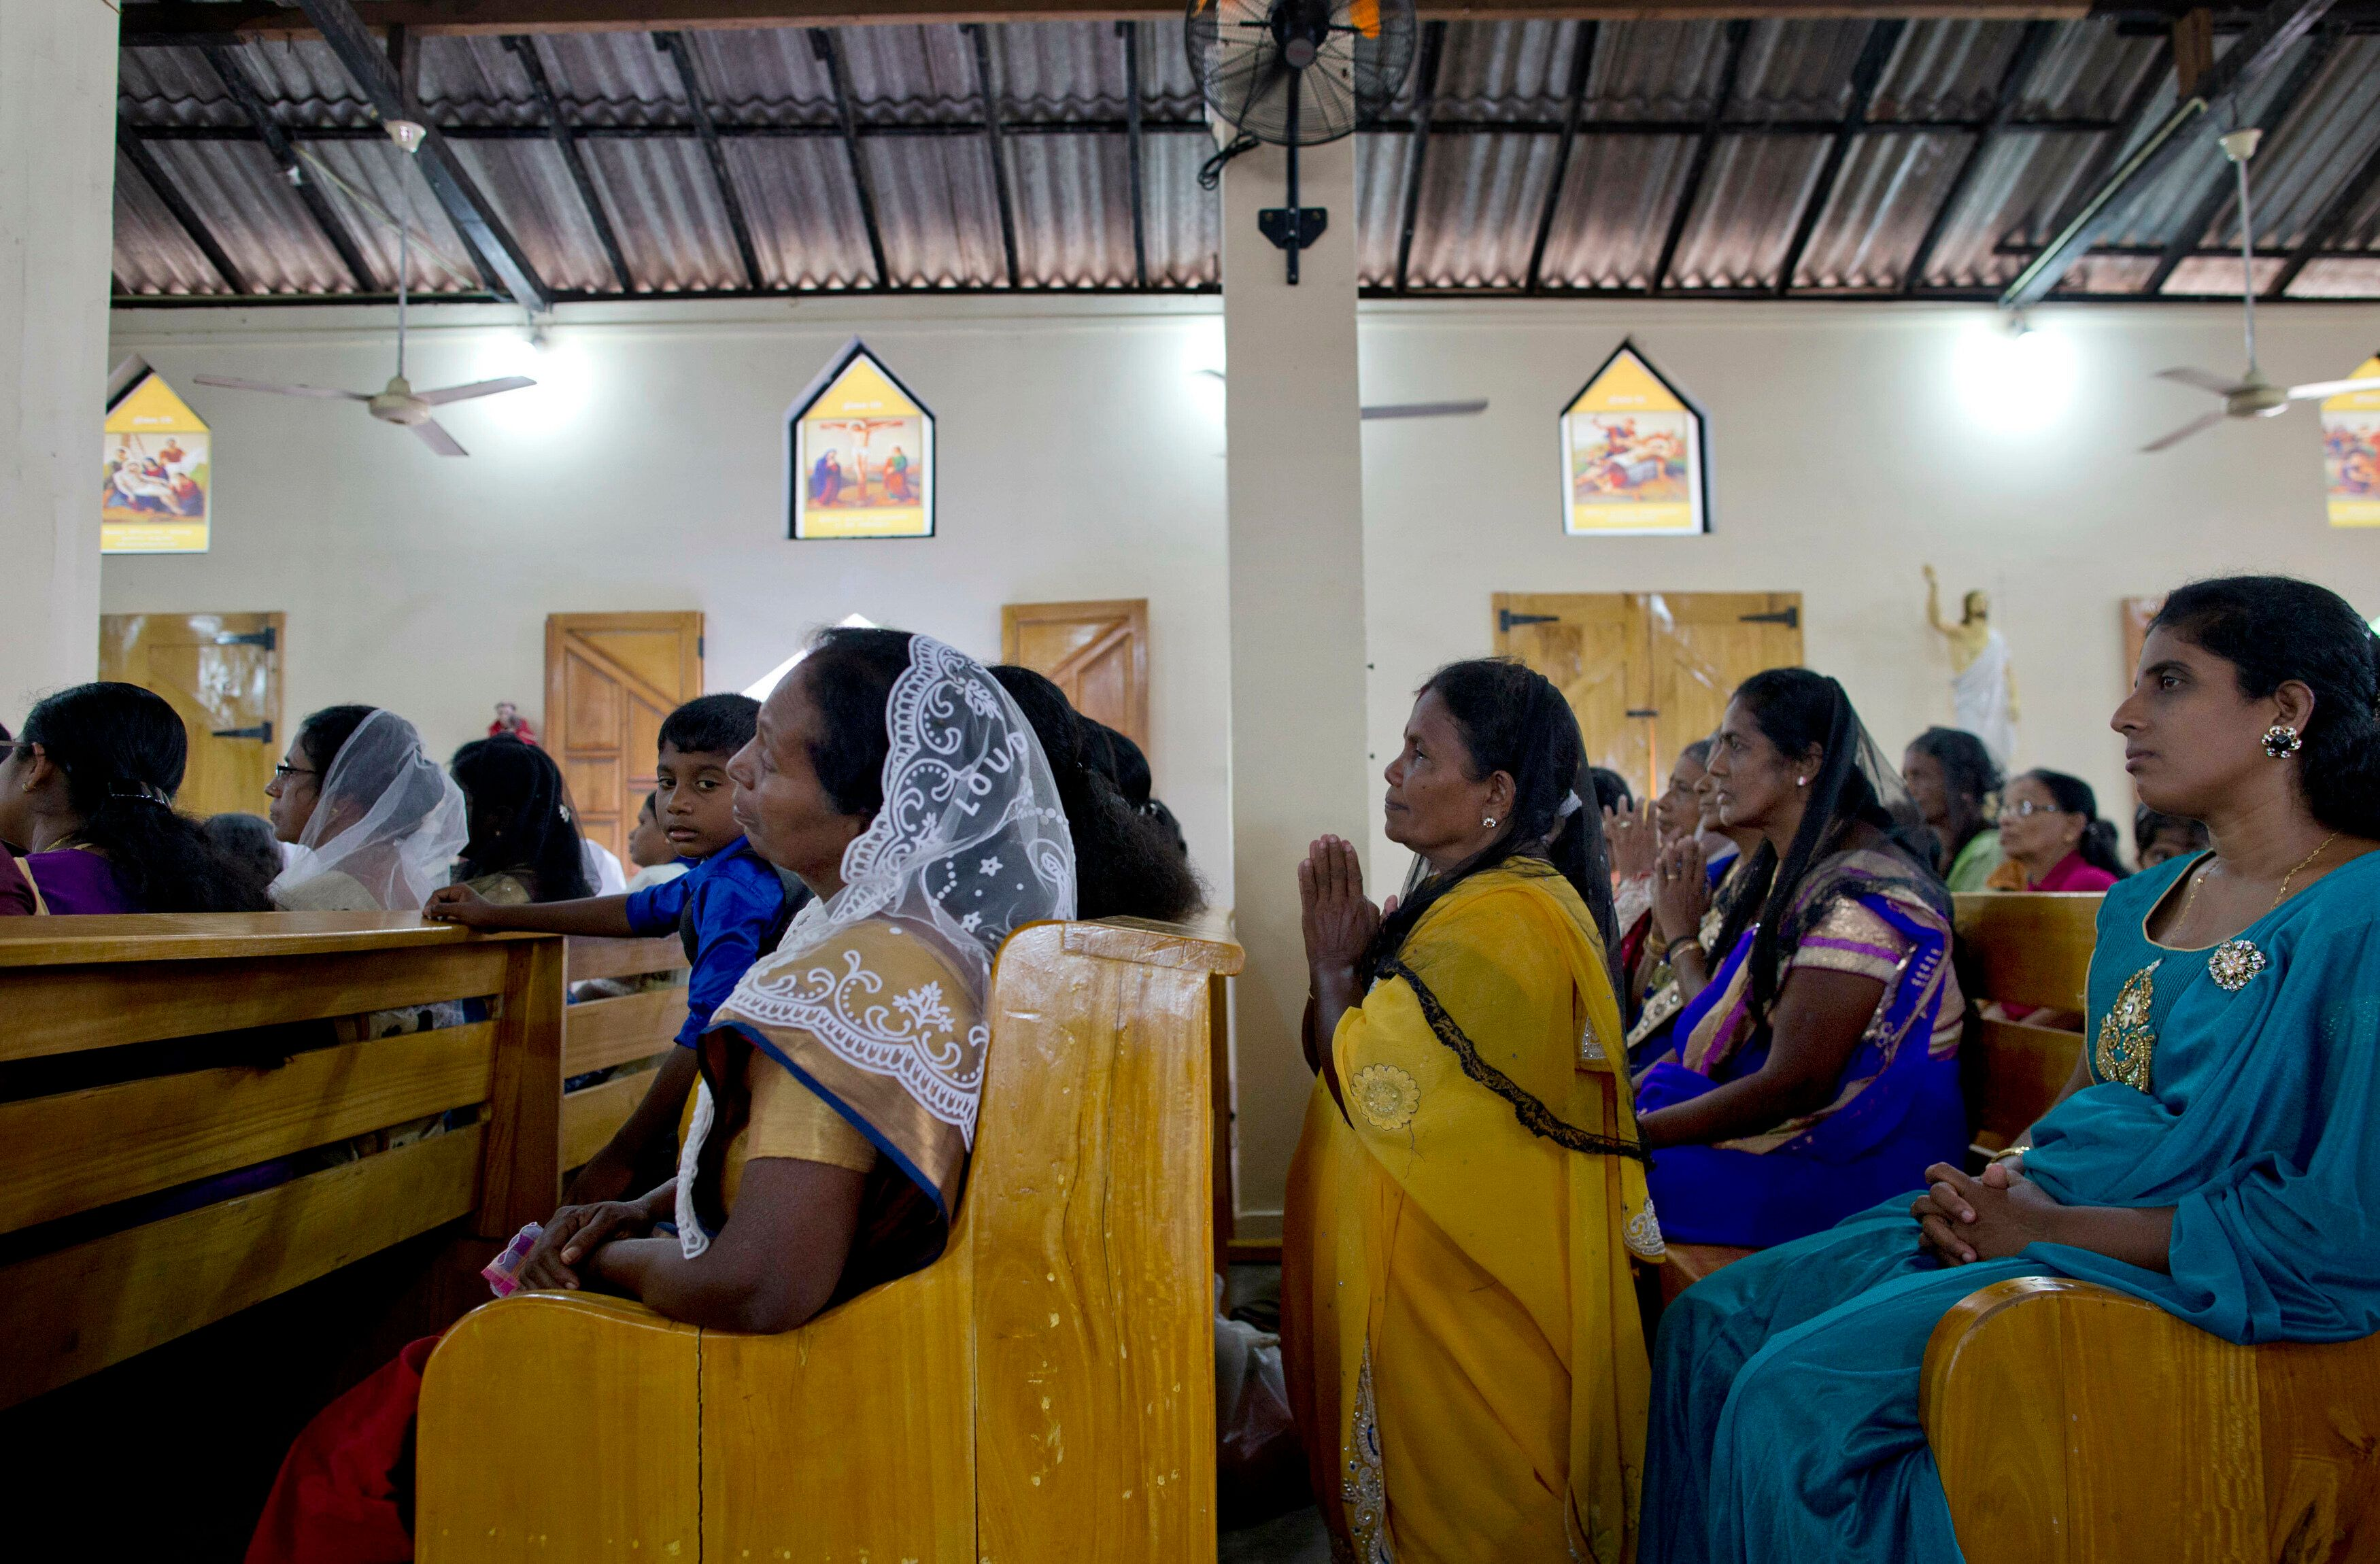 Catholics participate in Holy Mass at St. Joseph's church in Thannamunai, Sri Lanka, Tuesday, April 30, 2019. This small village in eastern Sri Lanka has held likely the first Mass since Catholic leaders closed all their churches for fear of more attacks after the Easter suicide bombings that killed over 250 people. (AP Photo/Gemunu Amarasinghe)